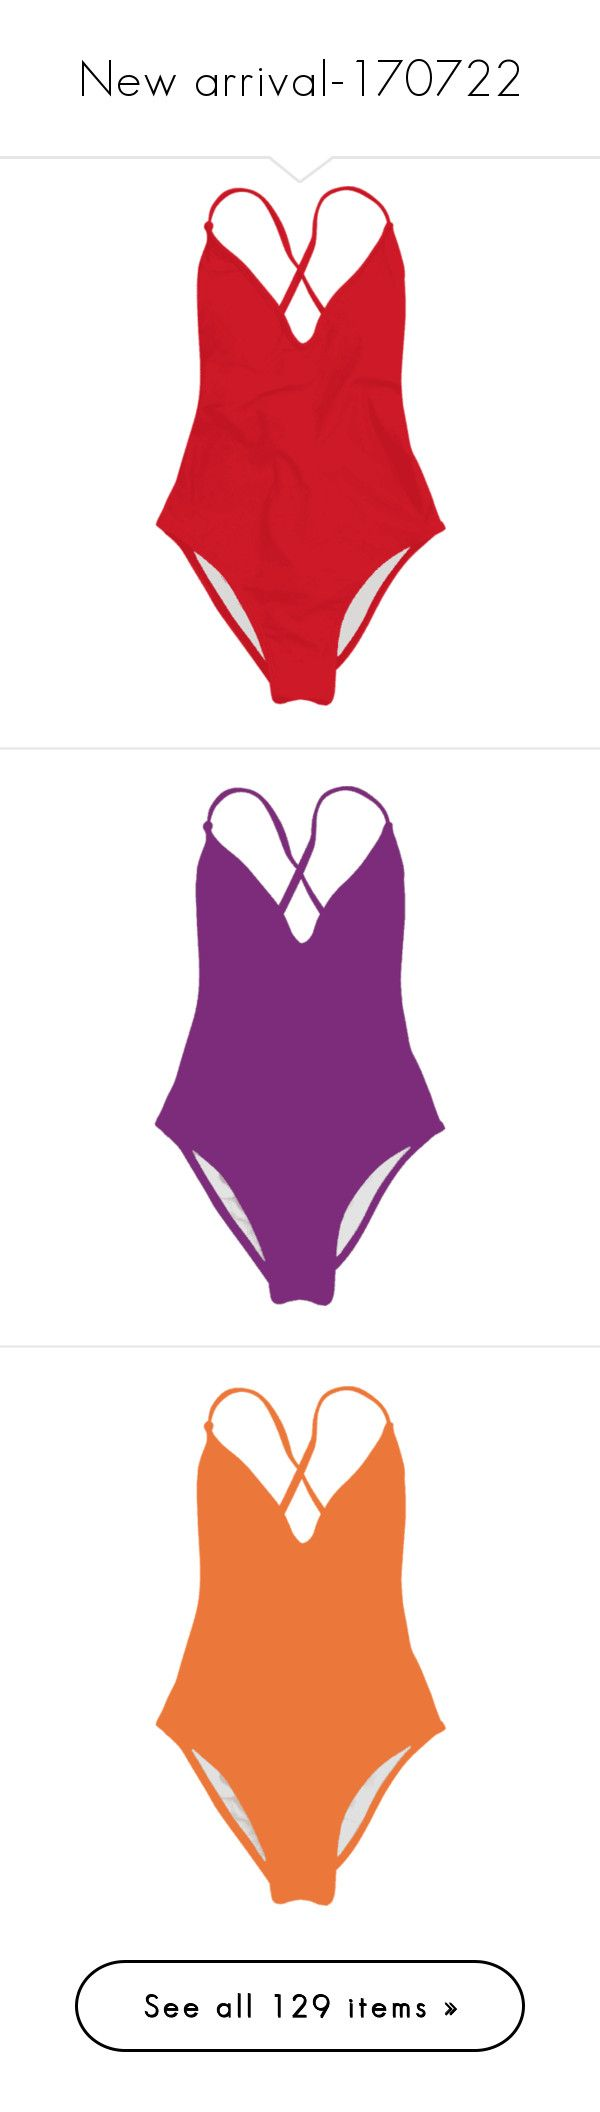 """""""New arrival-170722"""" by zaful ❤ liked on Polyvore featuring swimwear, one-piece swimsuits, red swimsuit, 1 piece swimwear, red bathing suit, one piece swim wear, 1 piece bathing suits, v neck one piece swimsuit, purple one piece bathing suit and 1 piece swimsuit"""